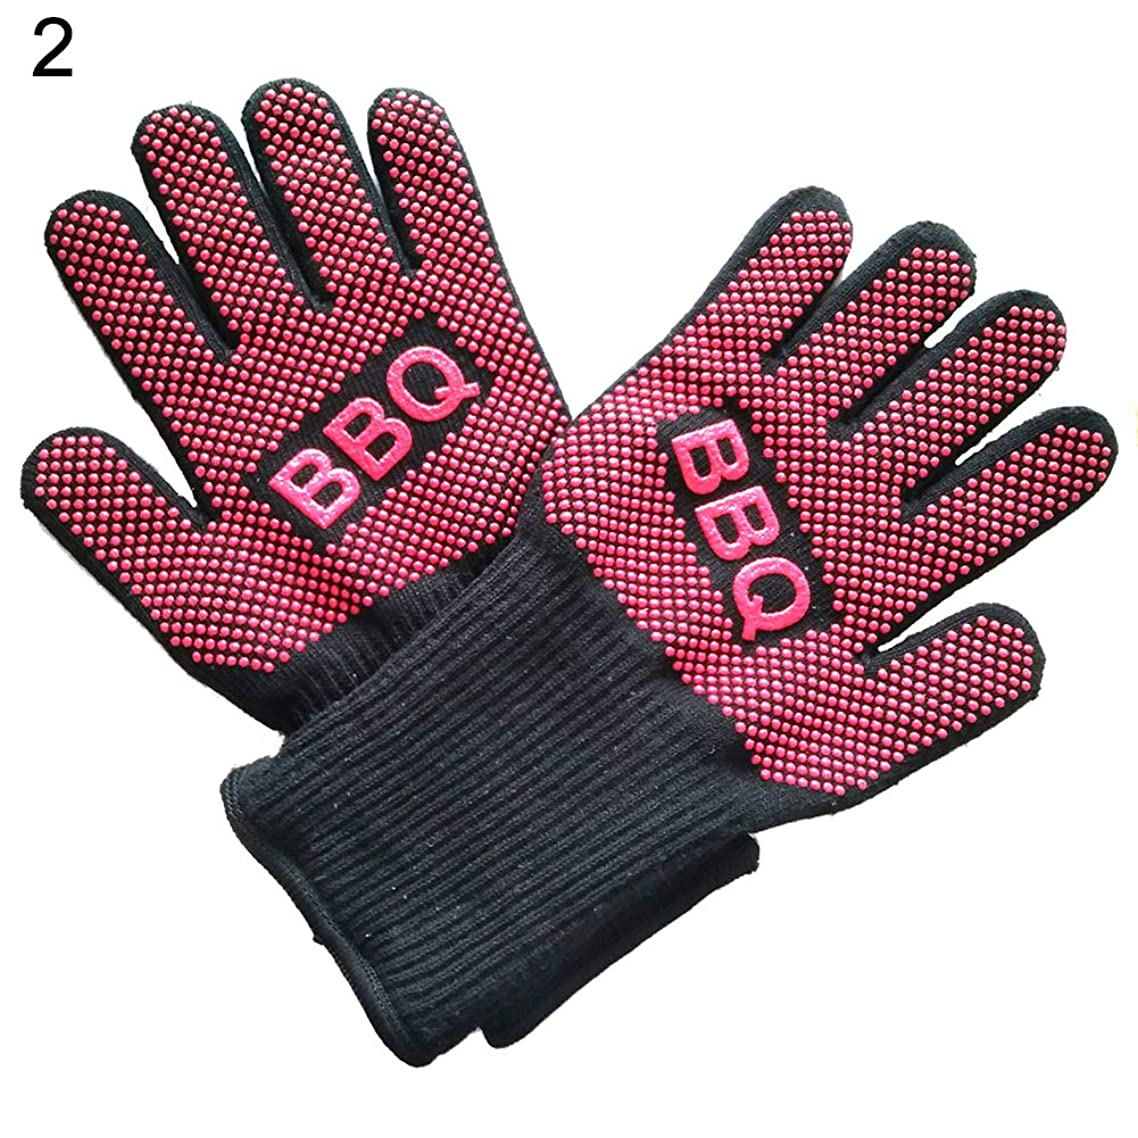 2Pcs Heat Resistant Gloves High Temperature Resistant Forearm Protection Use As Oven Mitts, Pot Holders, Heat Resistant Gloves for Grilling 2